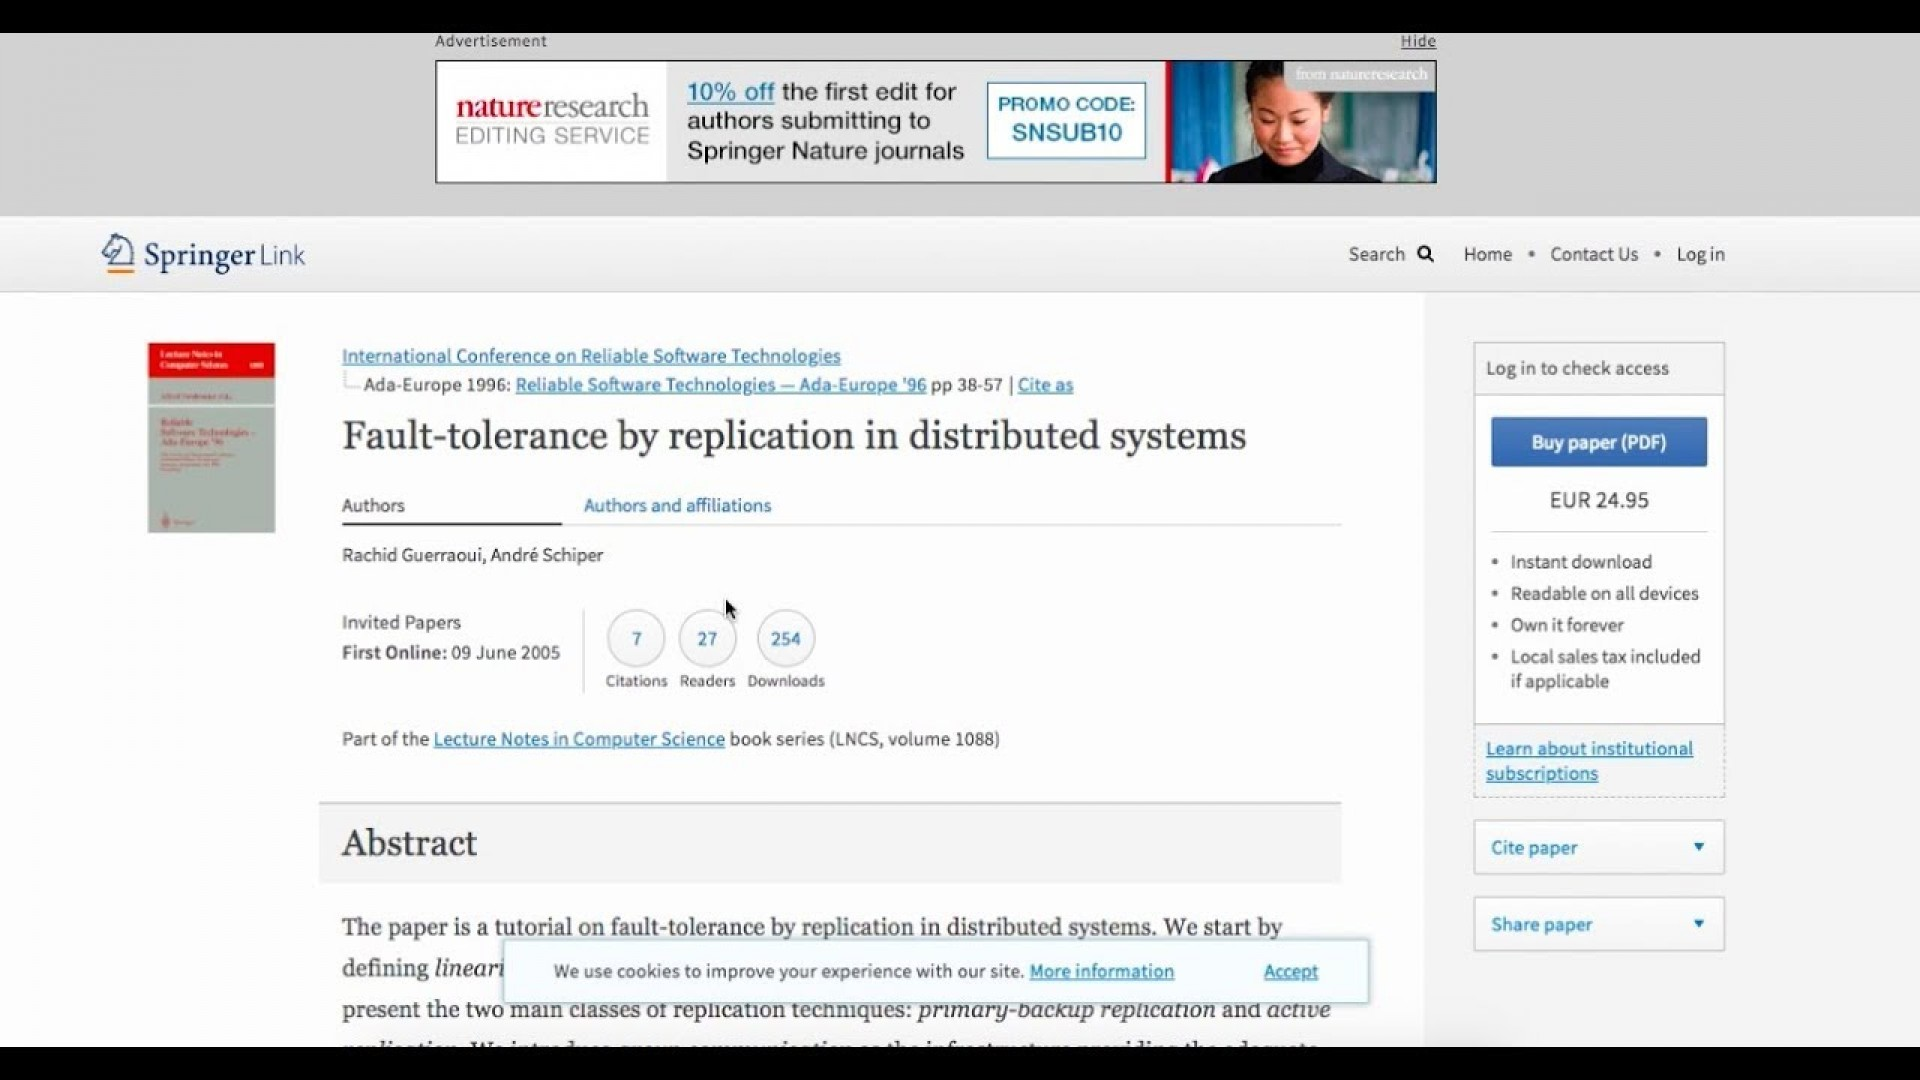 004 Research Paper Maxresdefault Best Site To Download Papers Unbelievable Free How From Ieee Google Scholar 1920